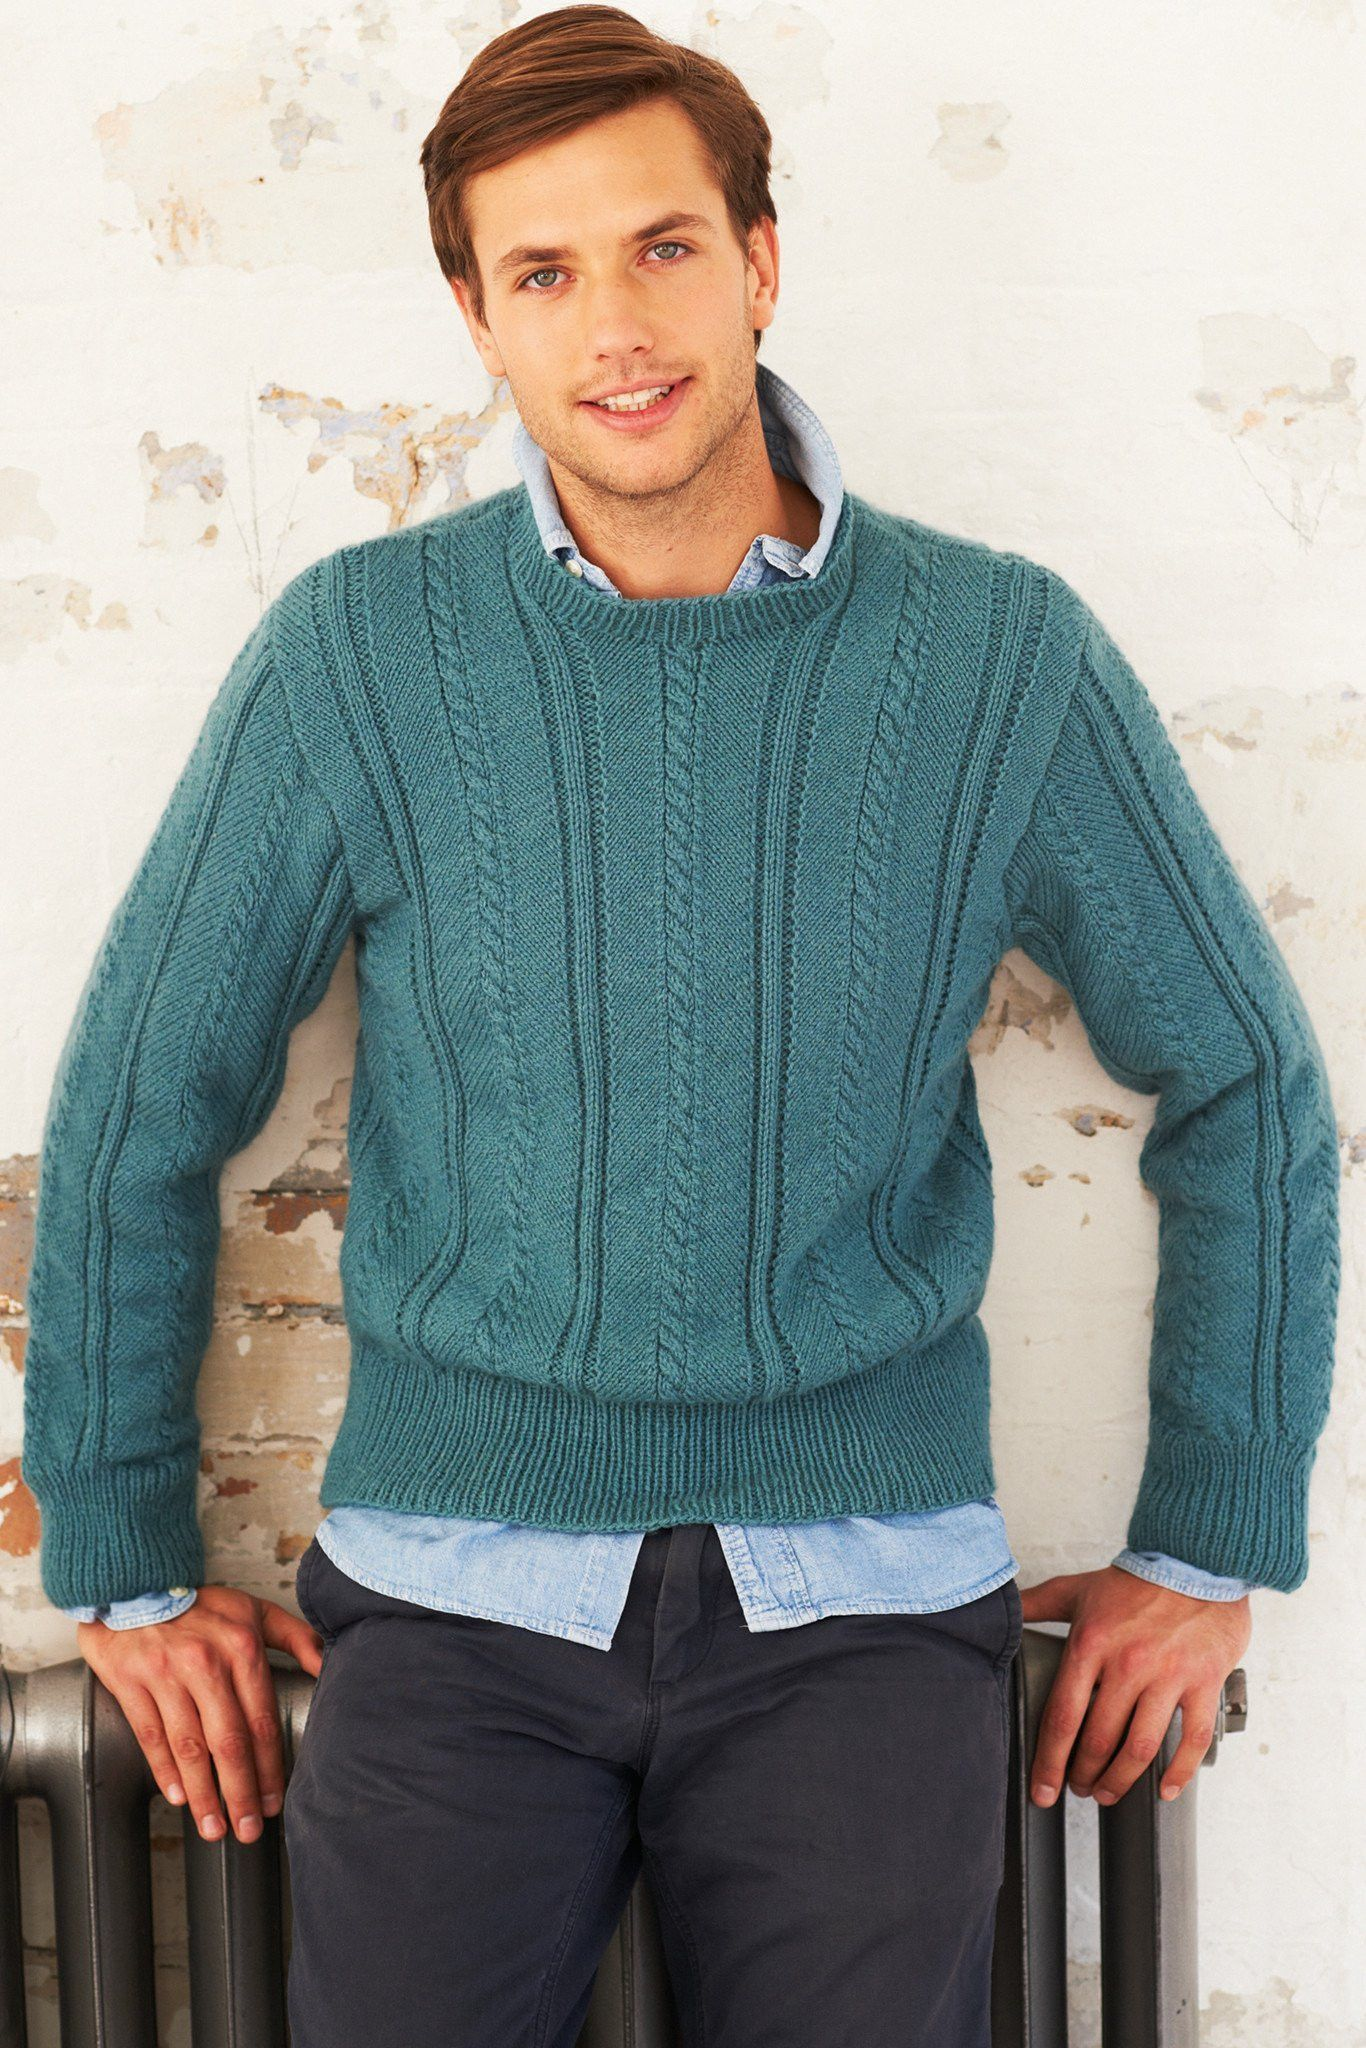 Vintage Cable Knit Jumper Mens Knitting Pattern   The Knitting Network